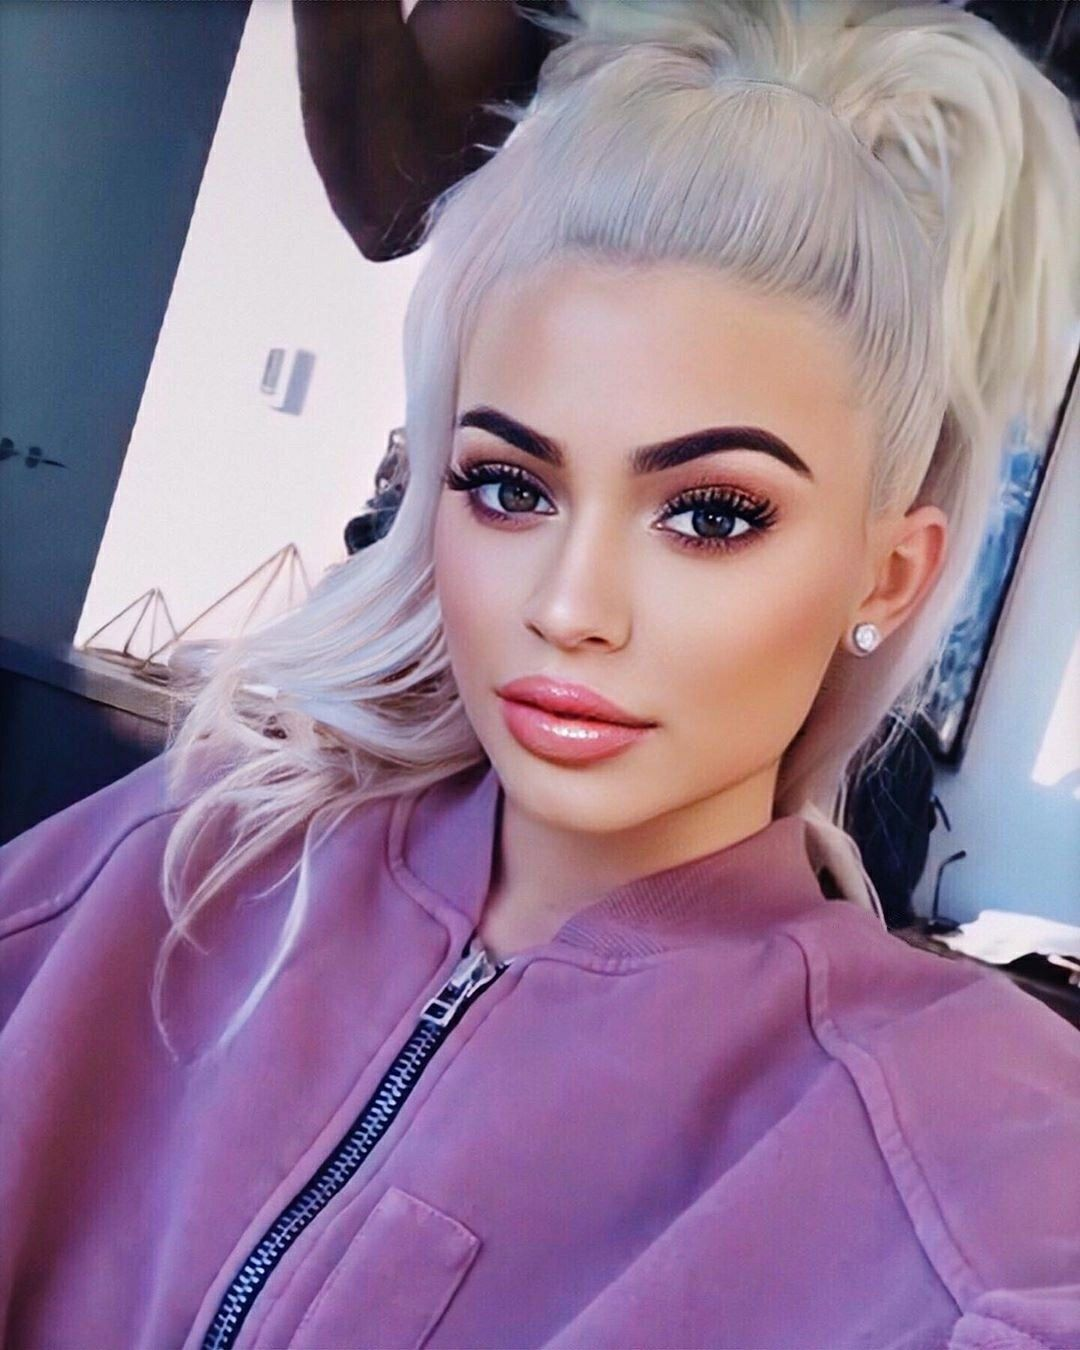 Pin by Kylie on Kylie Jenner in 2020 Kylie jenner, Kylie